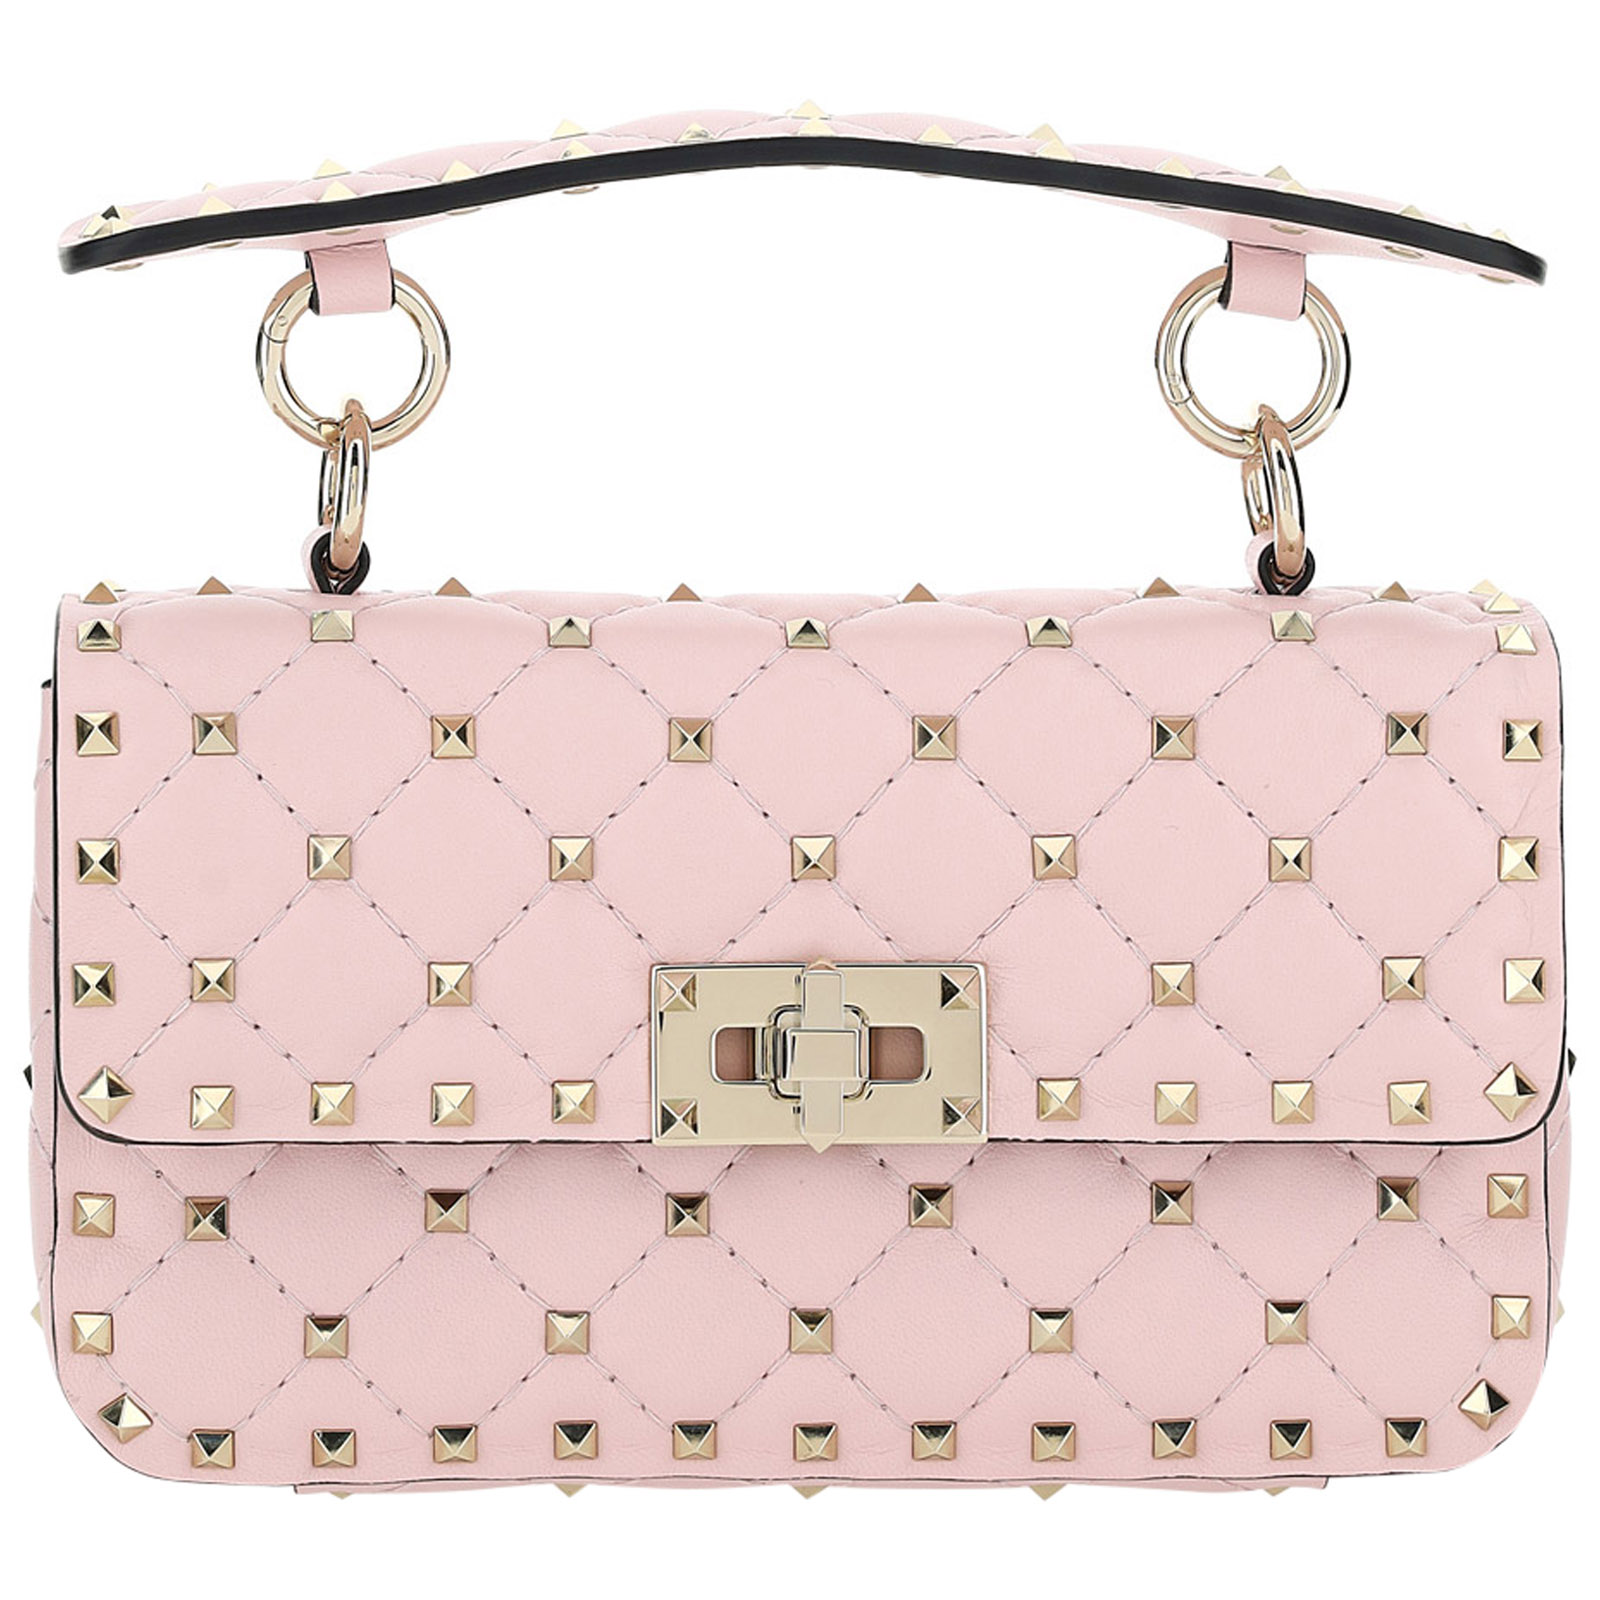 Valentino Wallets WOMEN'S LEATHER HANDBAG SHOPPING BAG PURSE  ROCKSTUD SMALL